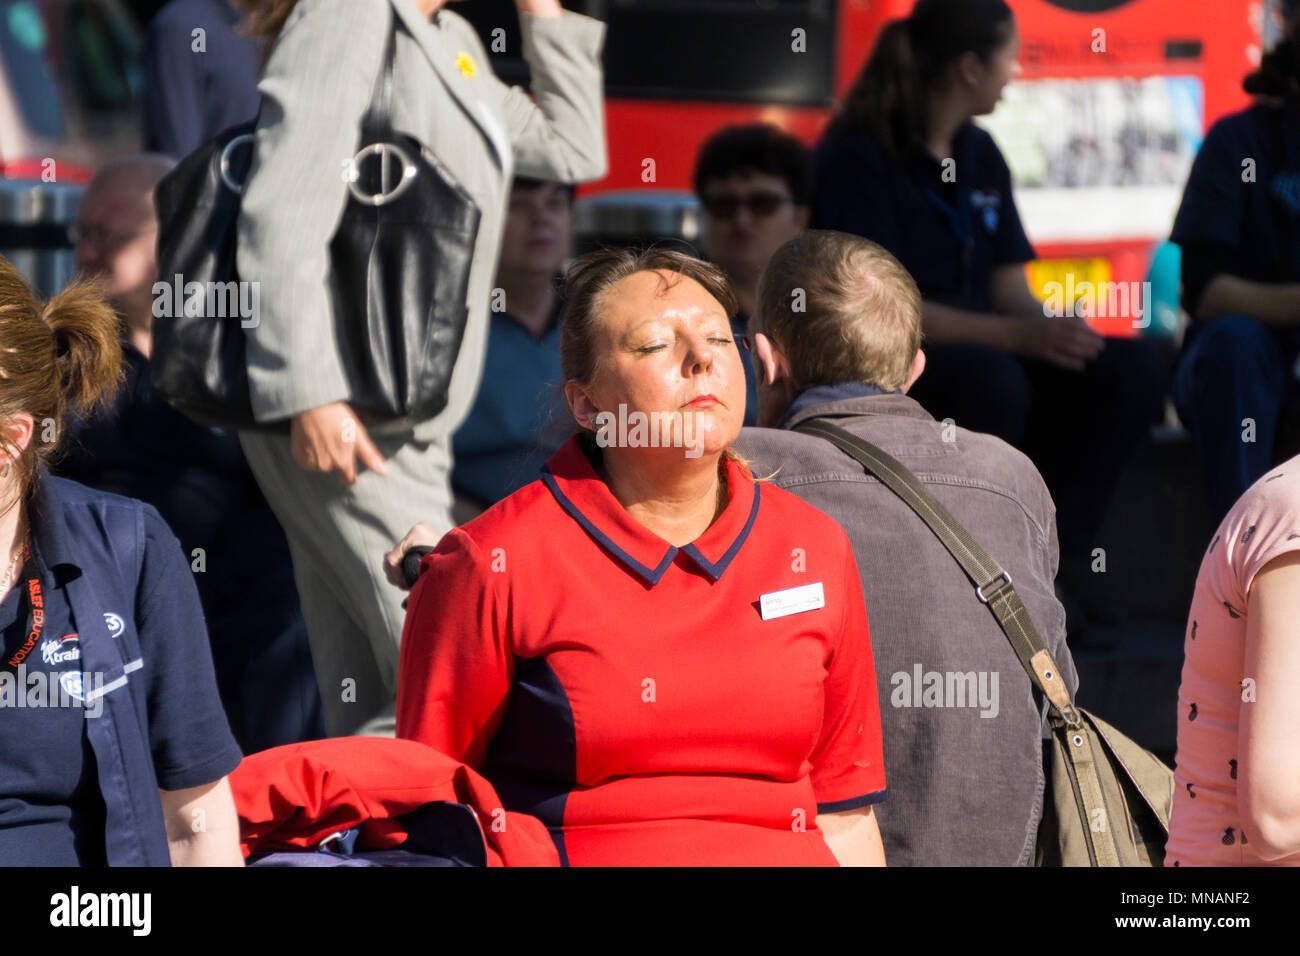 London, UK. 15th May 2018. People enjoy the hot sunny weather in Central London Credit: Ink Drop/Alamy Live News - Stock Image